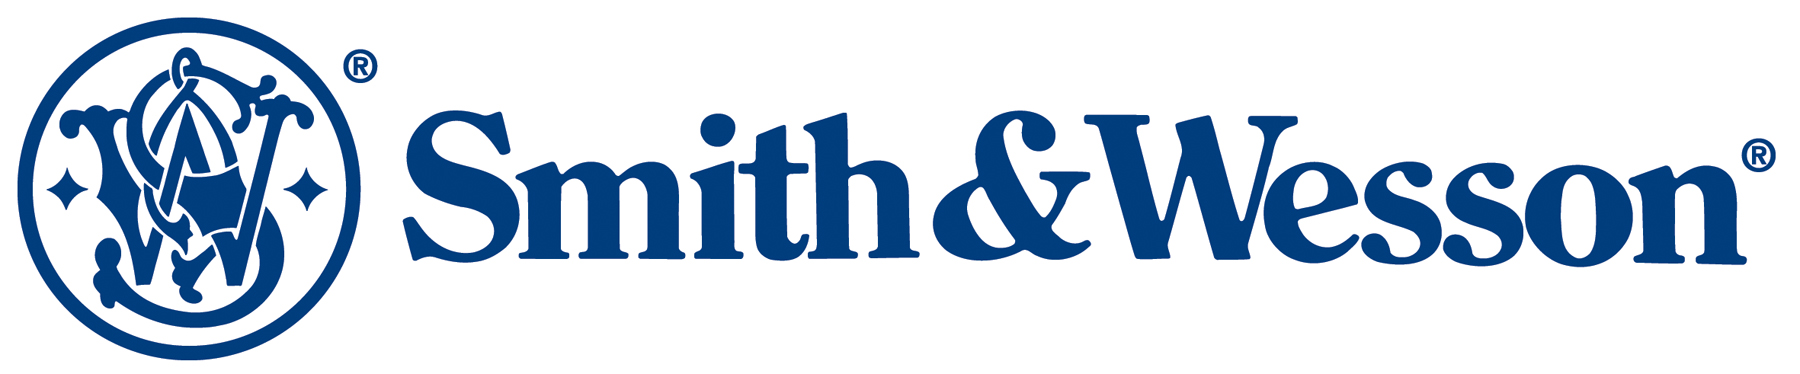 Smith & Wesson Logos | Smith & Wesson